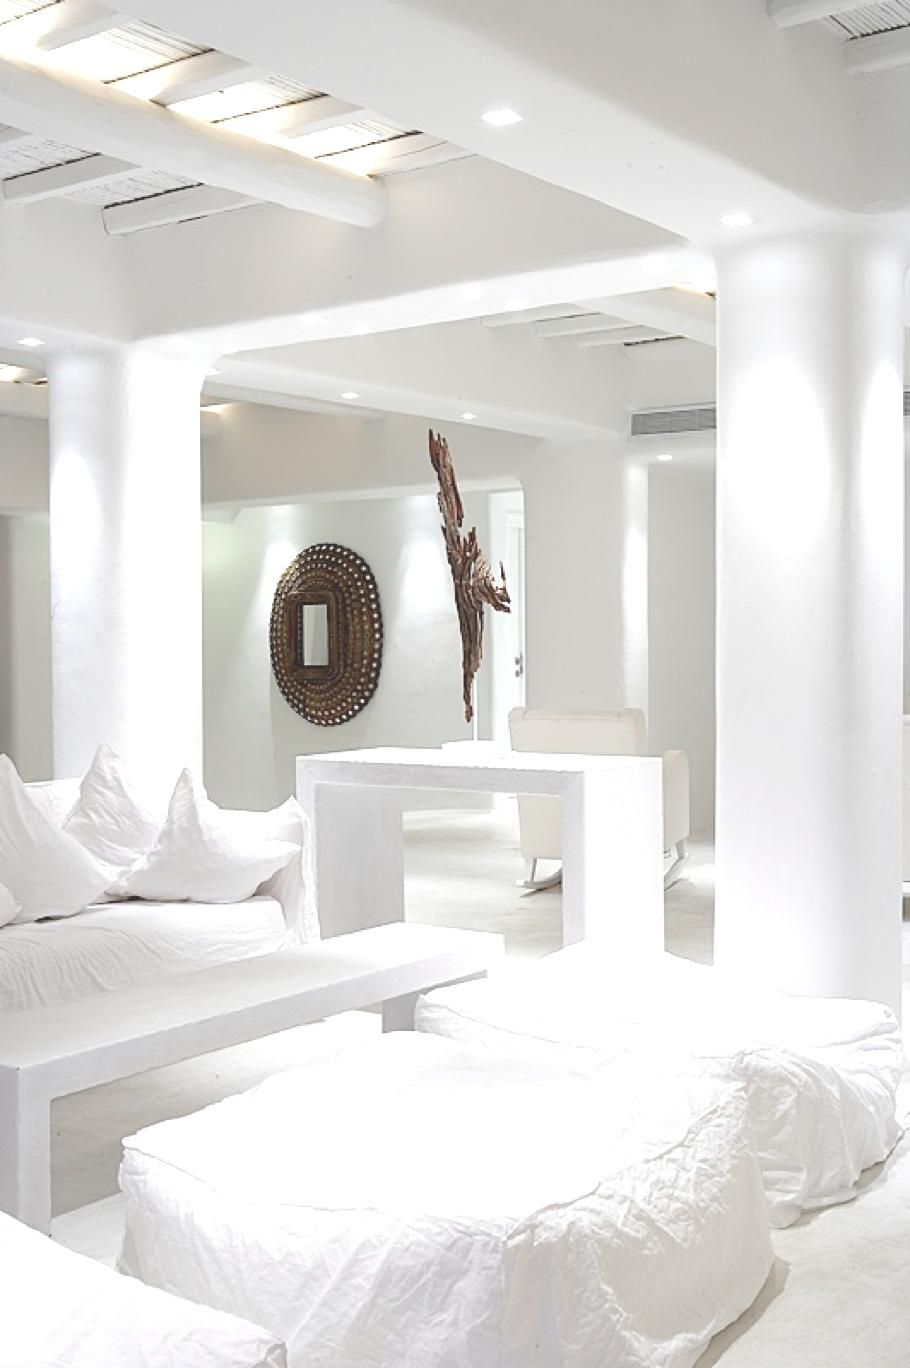 Small Hotel Room: All White.....in A Luxury Hotel Mykonos